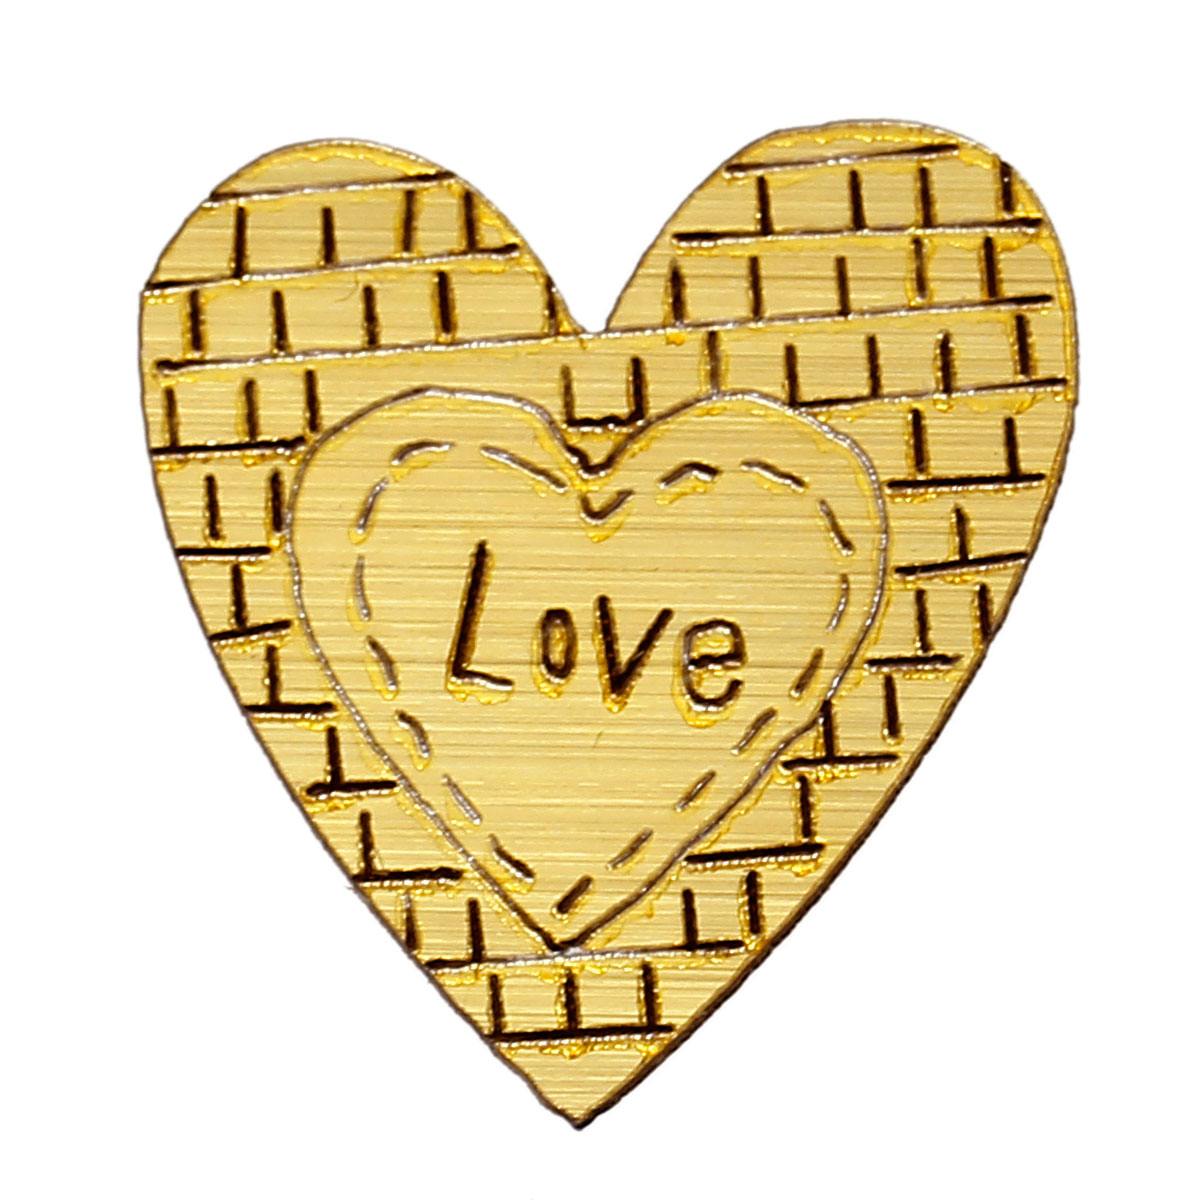 Wood Cabochons Scrapbooking Embellishments Findings Heart Golden Message Love 31mm(1 2/8)x 29mm(1 1/8),50 PCs